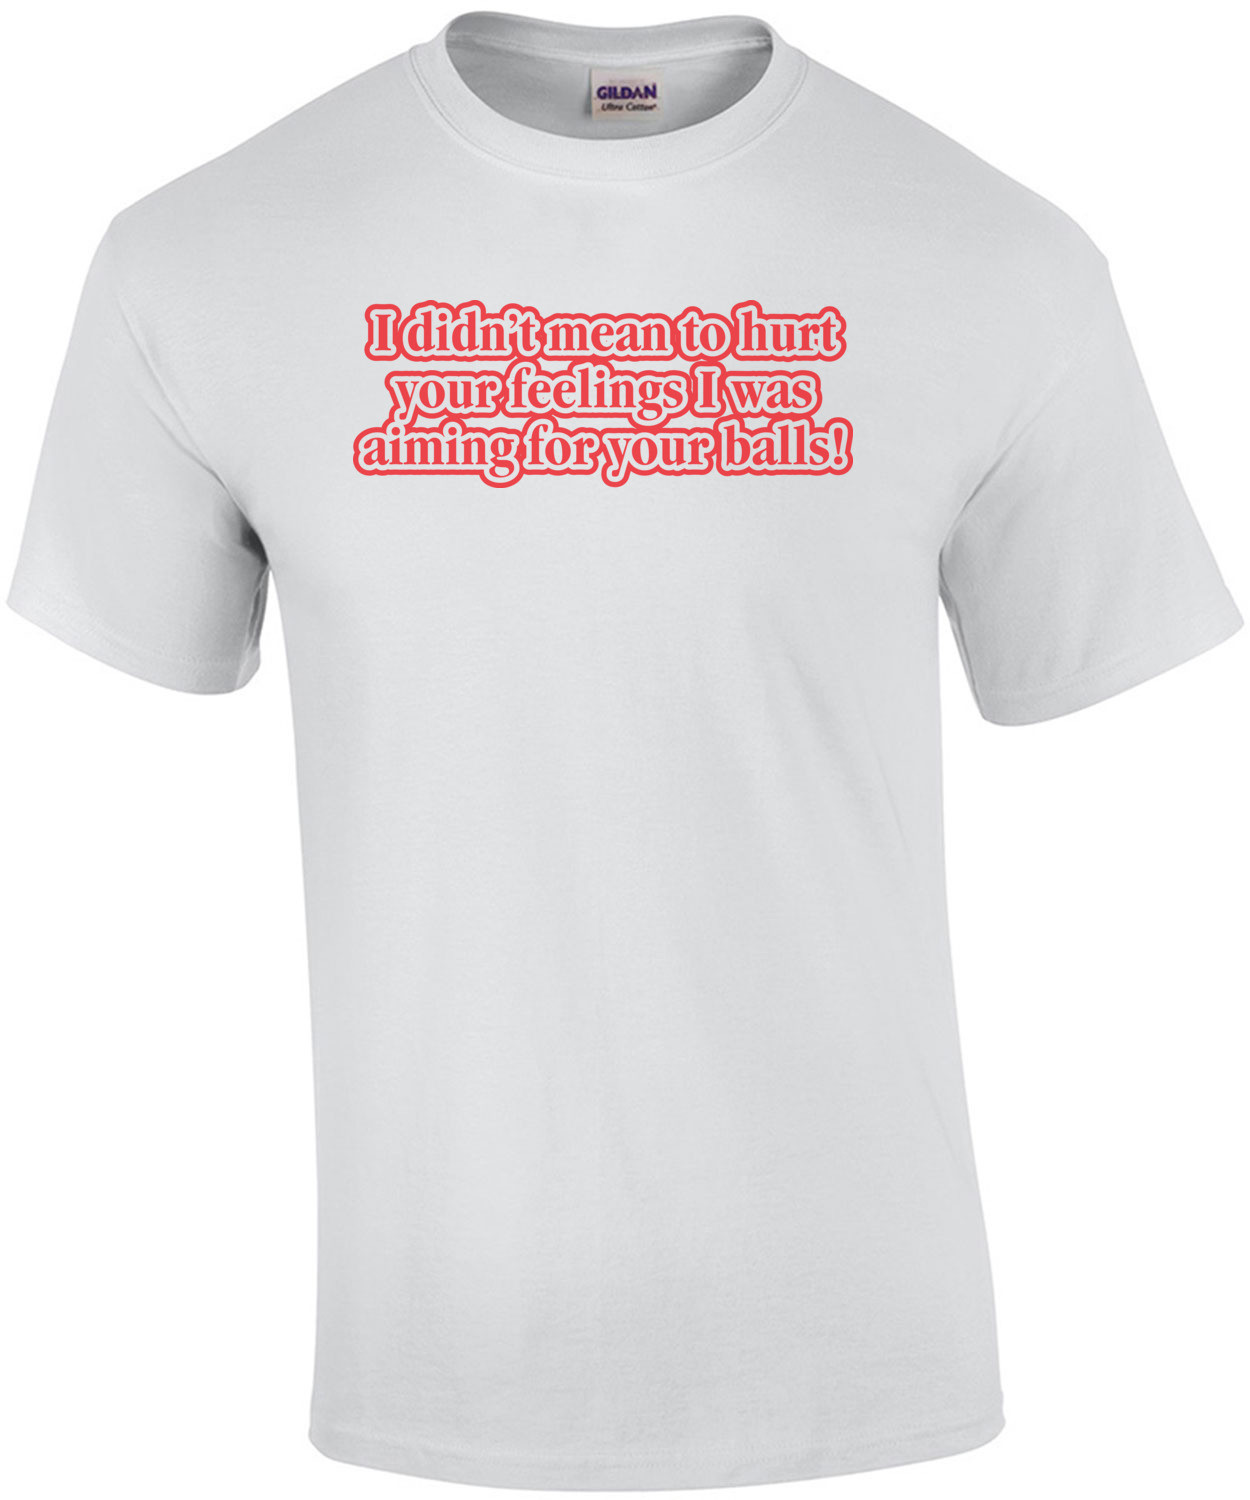 I Didn't Mean To Hurt Your Feelings, I Was Aiming For Your Balls T-shirt